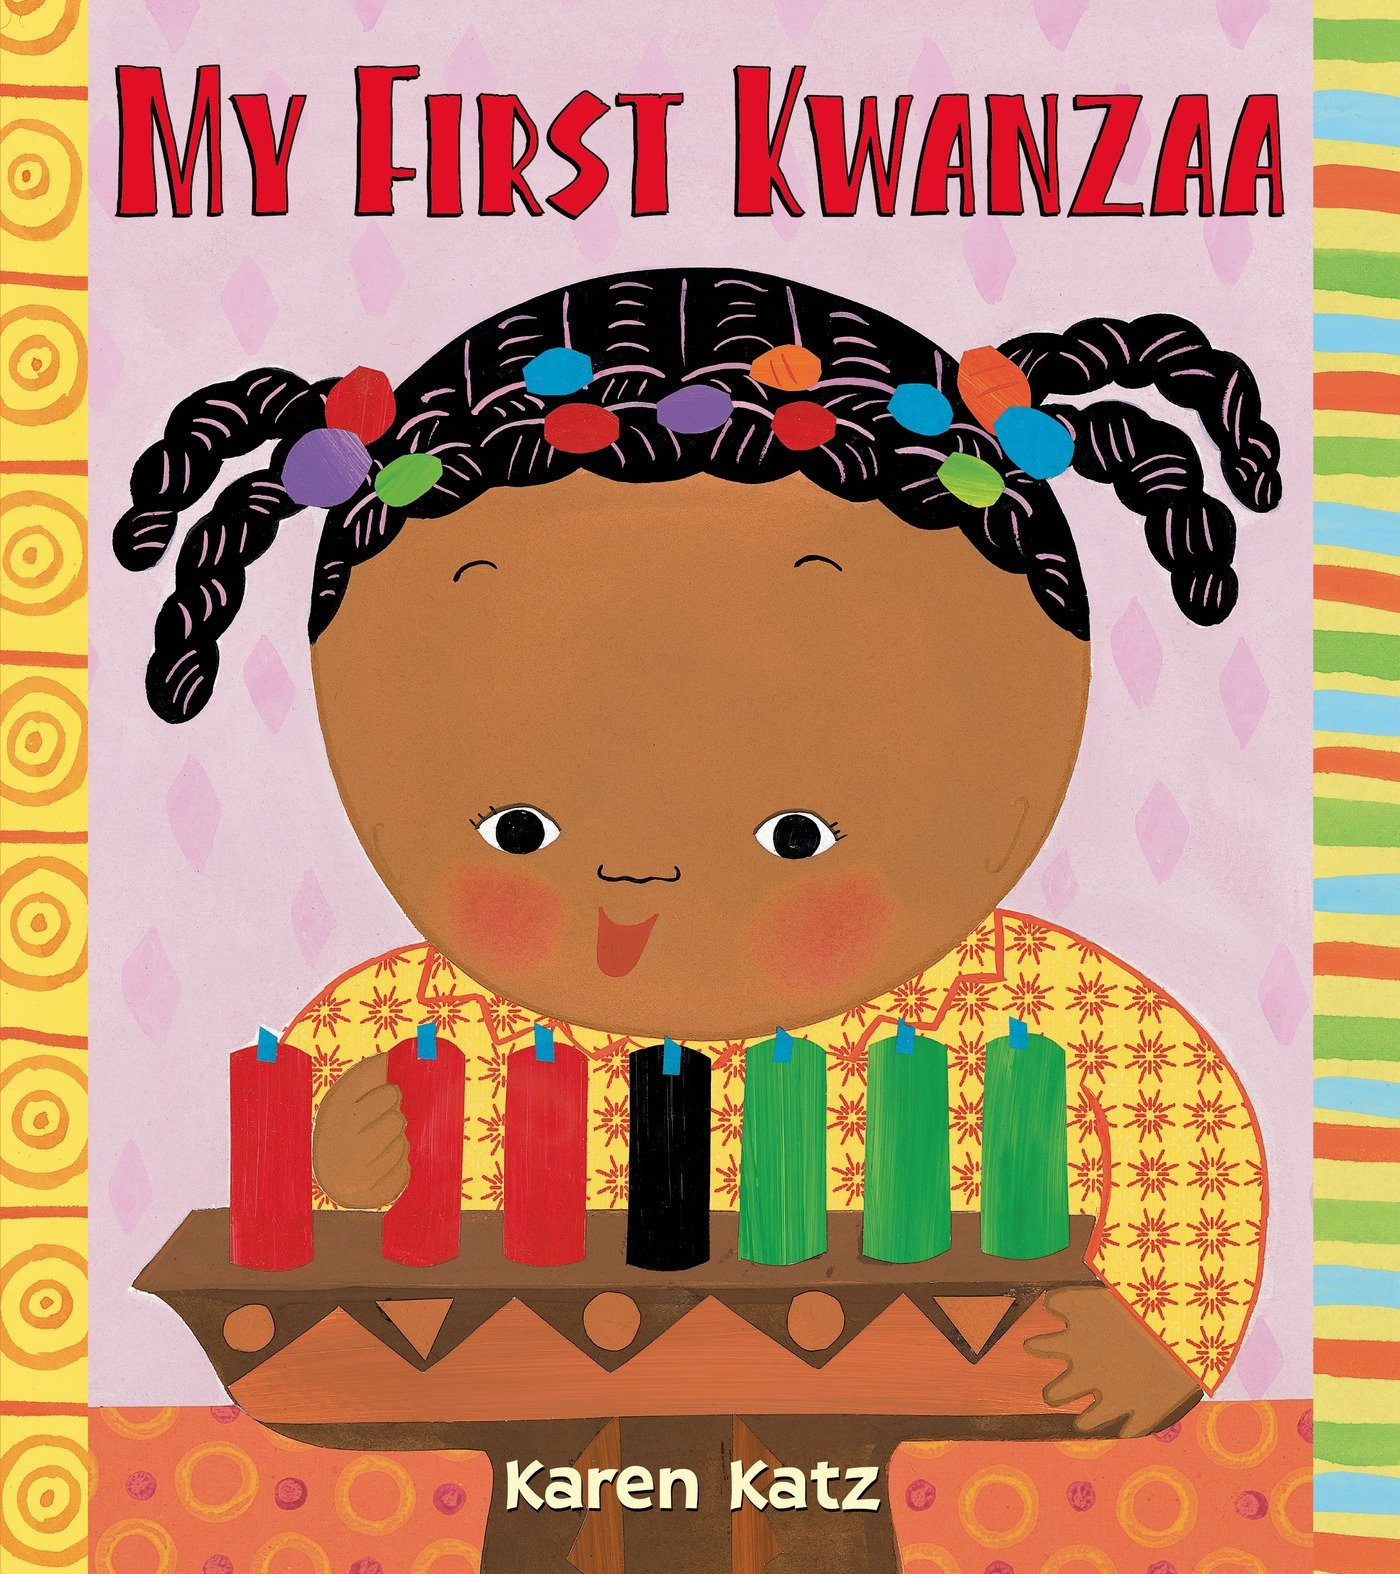 91DnaceI3uL-1 Kwanzaa Books to Add to Your Collection